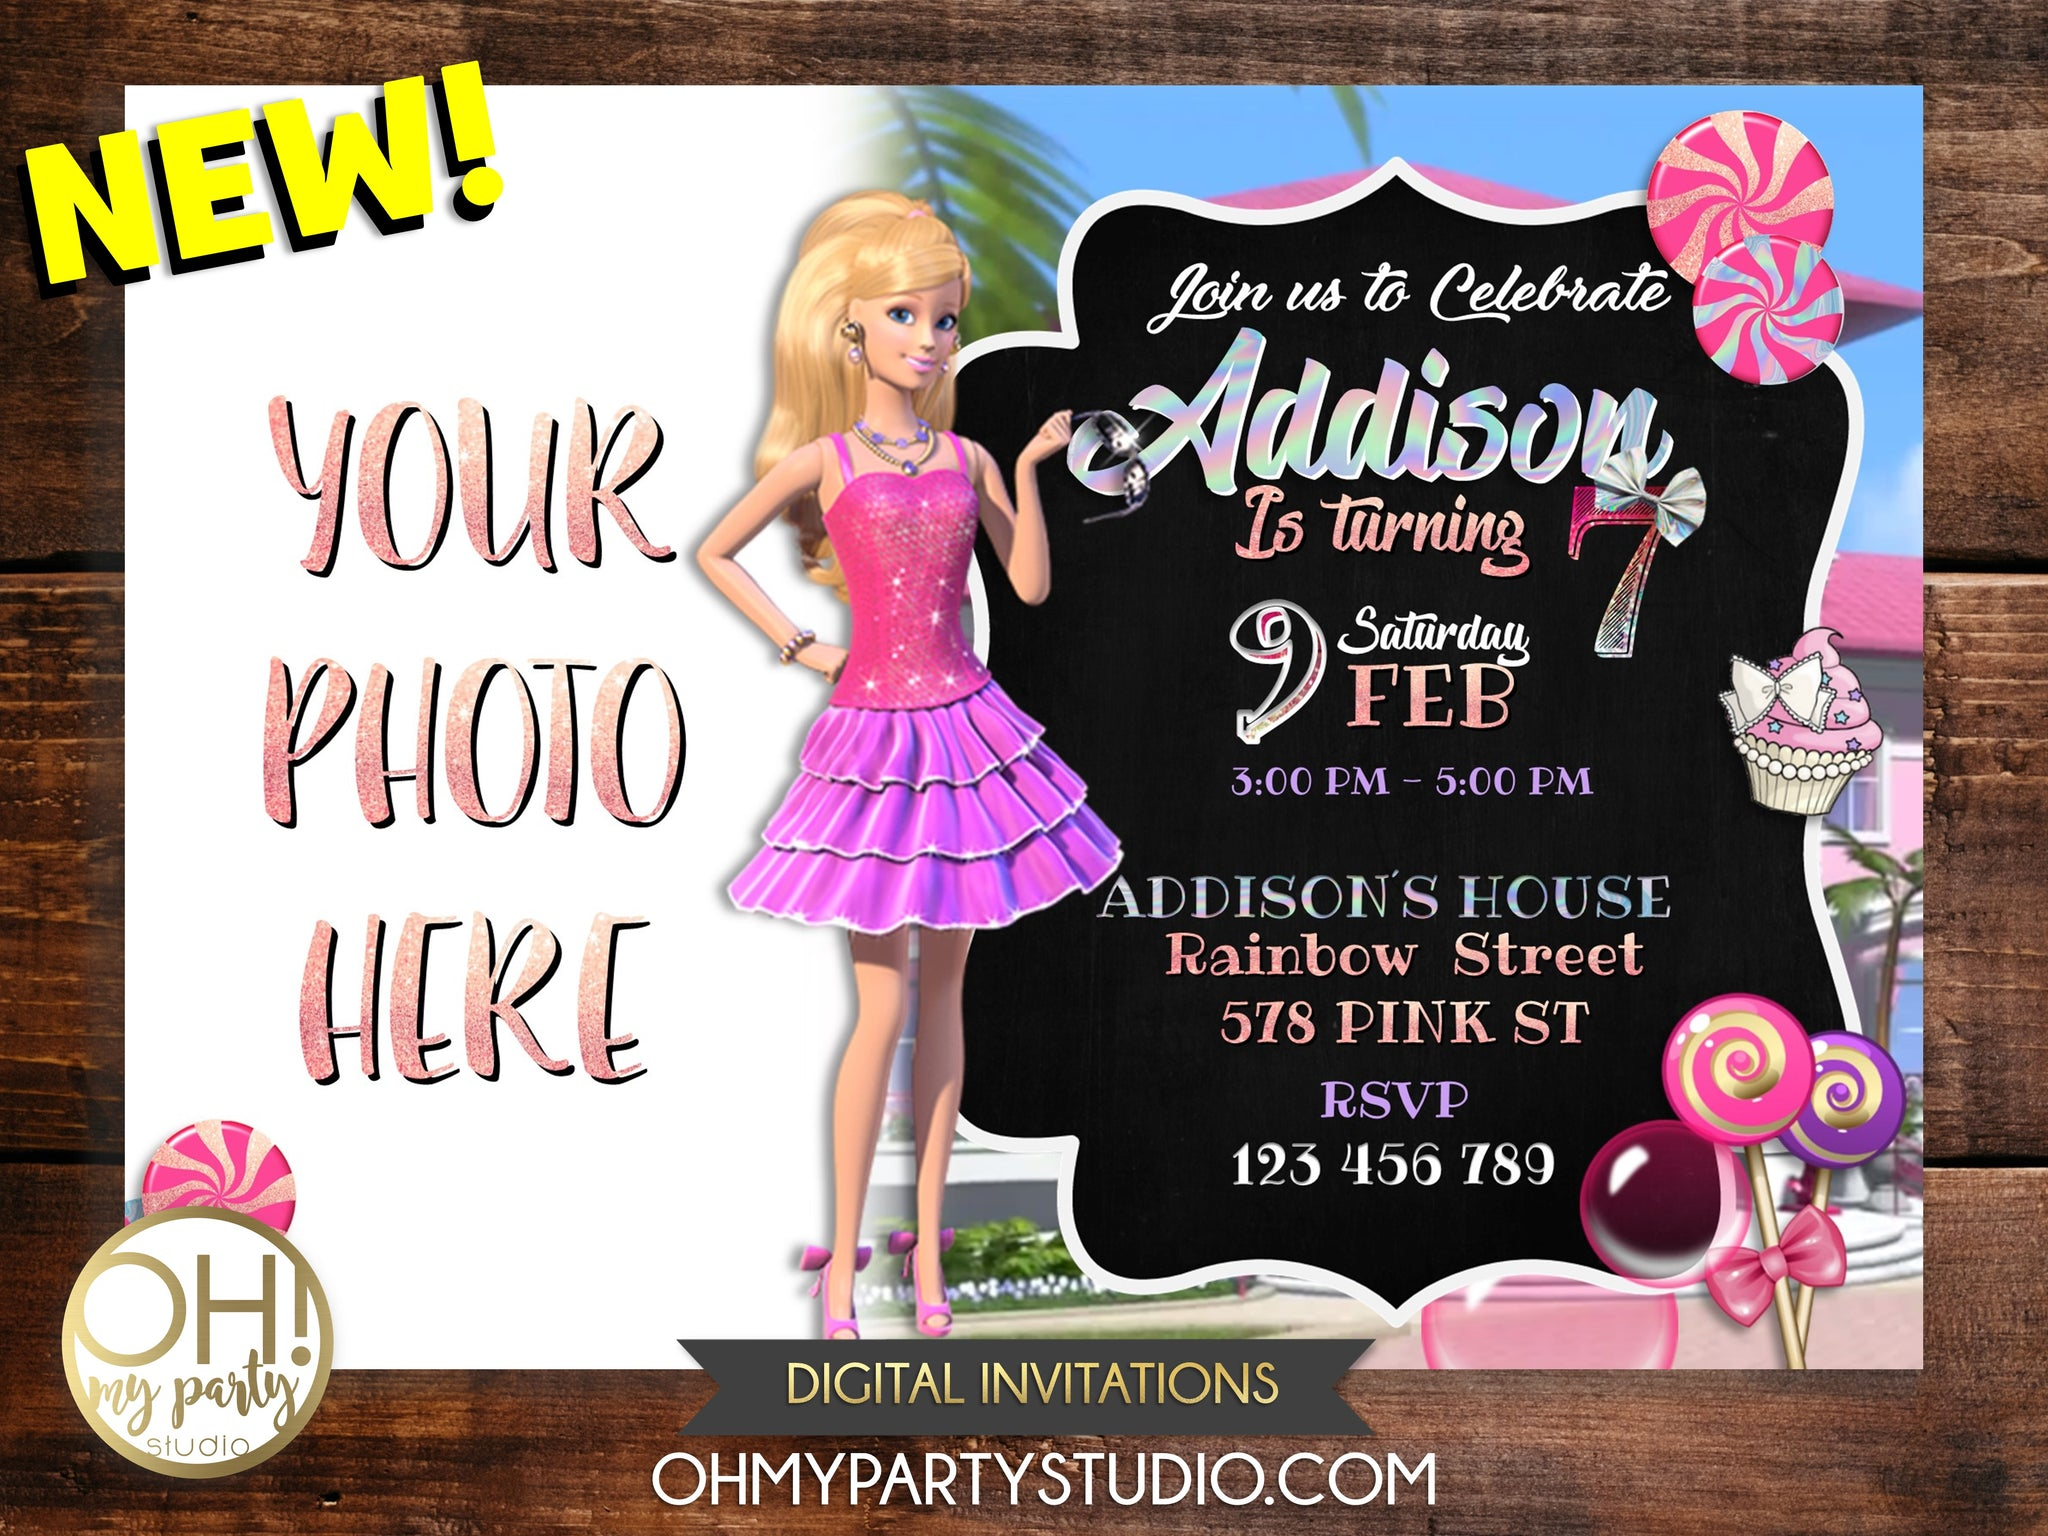 BARBIE BIRTHDAY INVITATION, BARBIE INVITATION DIGITAL, BARBIE INVITE, BARBIE CARD, BARBIE PARTY BARBIE BIRTHDAY, BARBIE INVITATIONS, BARBIE INVITATION, BARBIE PARTY THEME, BARBIE PARTY IDEAS, BARBIE INVITACION, BARBIE INVITE, BARBIE PRINTABLES, BARBIE PARTY PRINTABLES